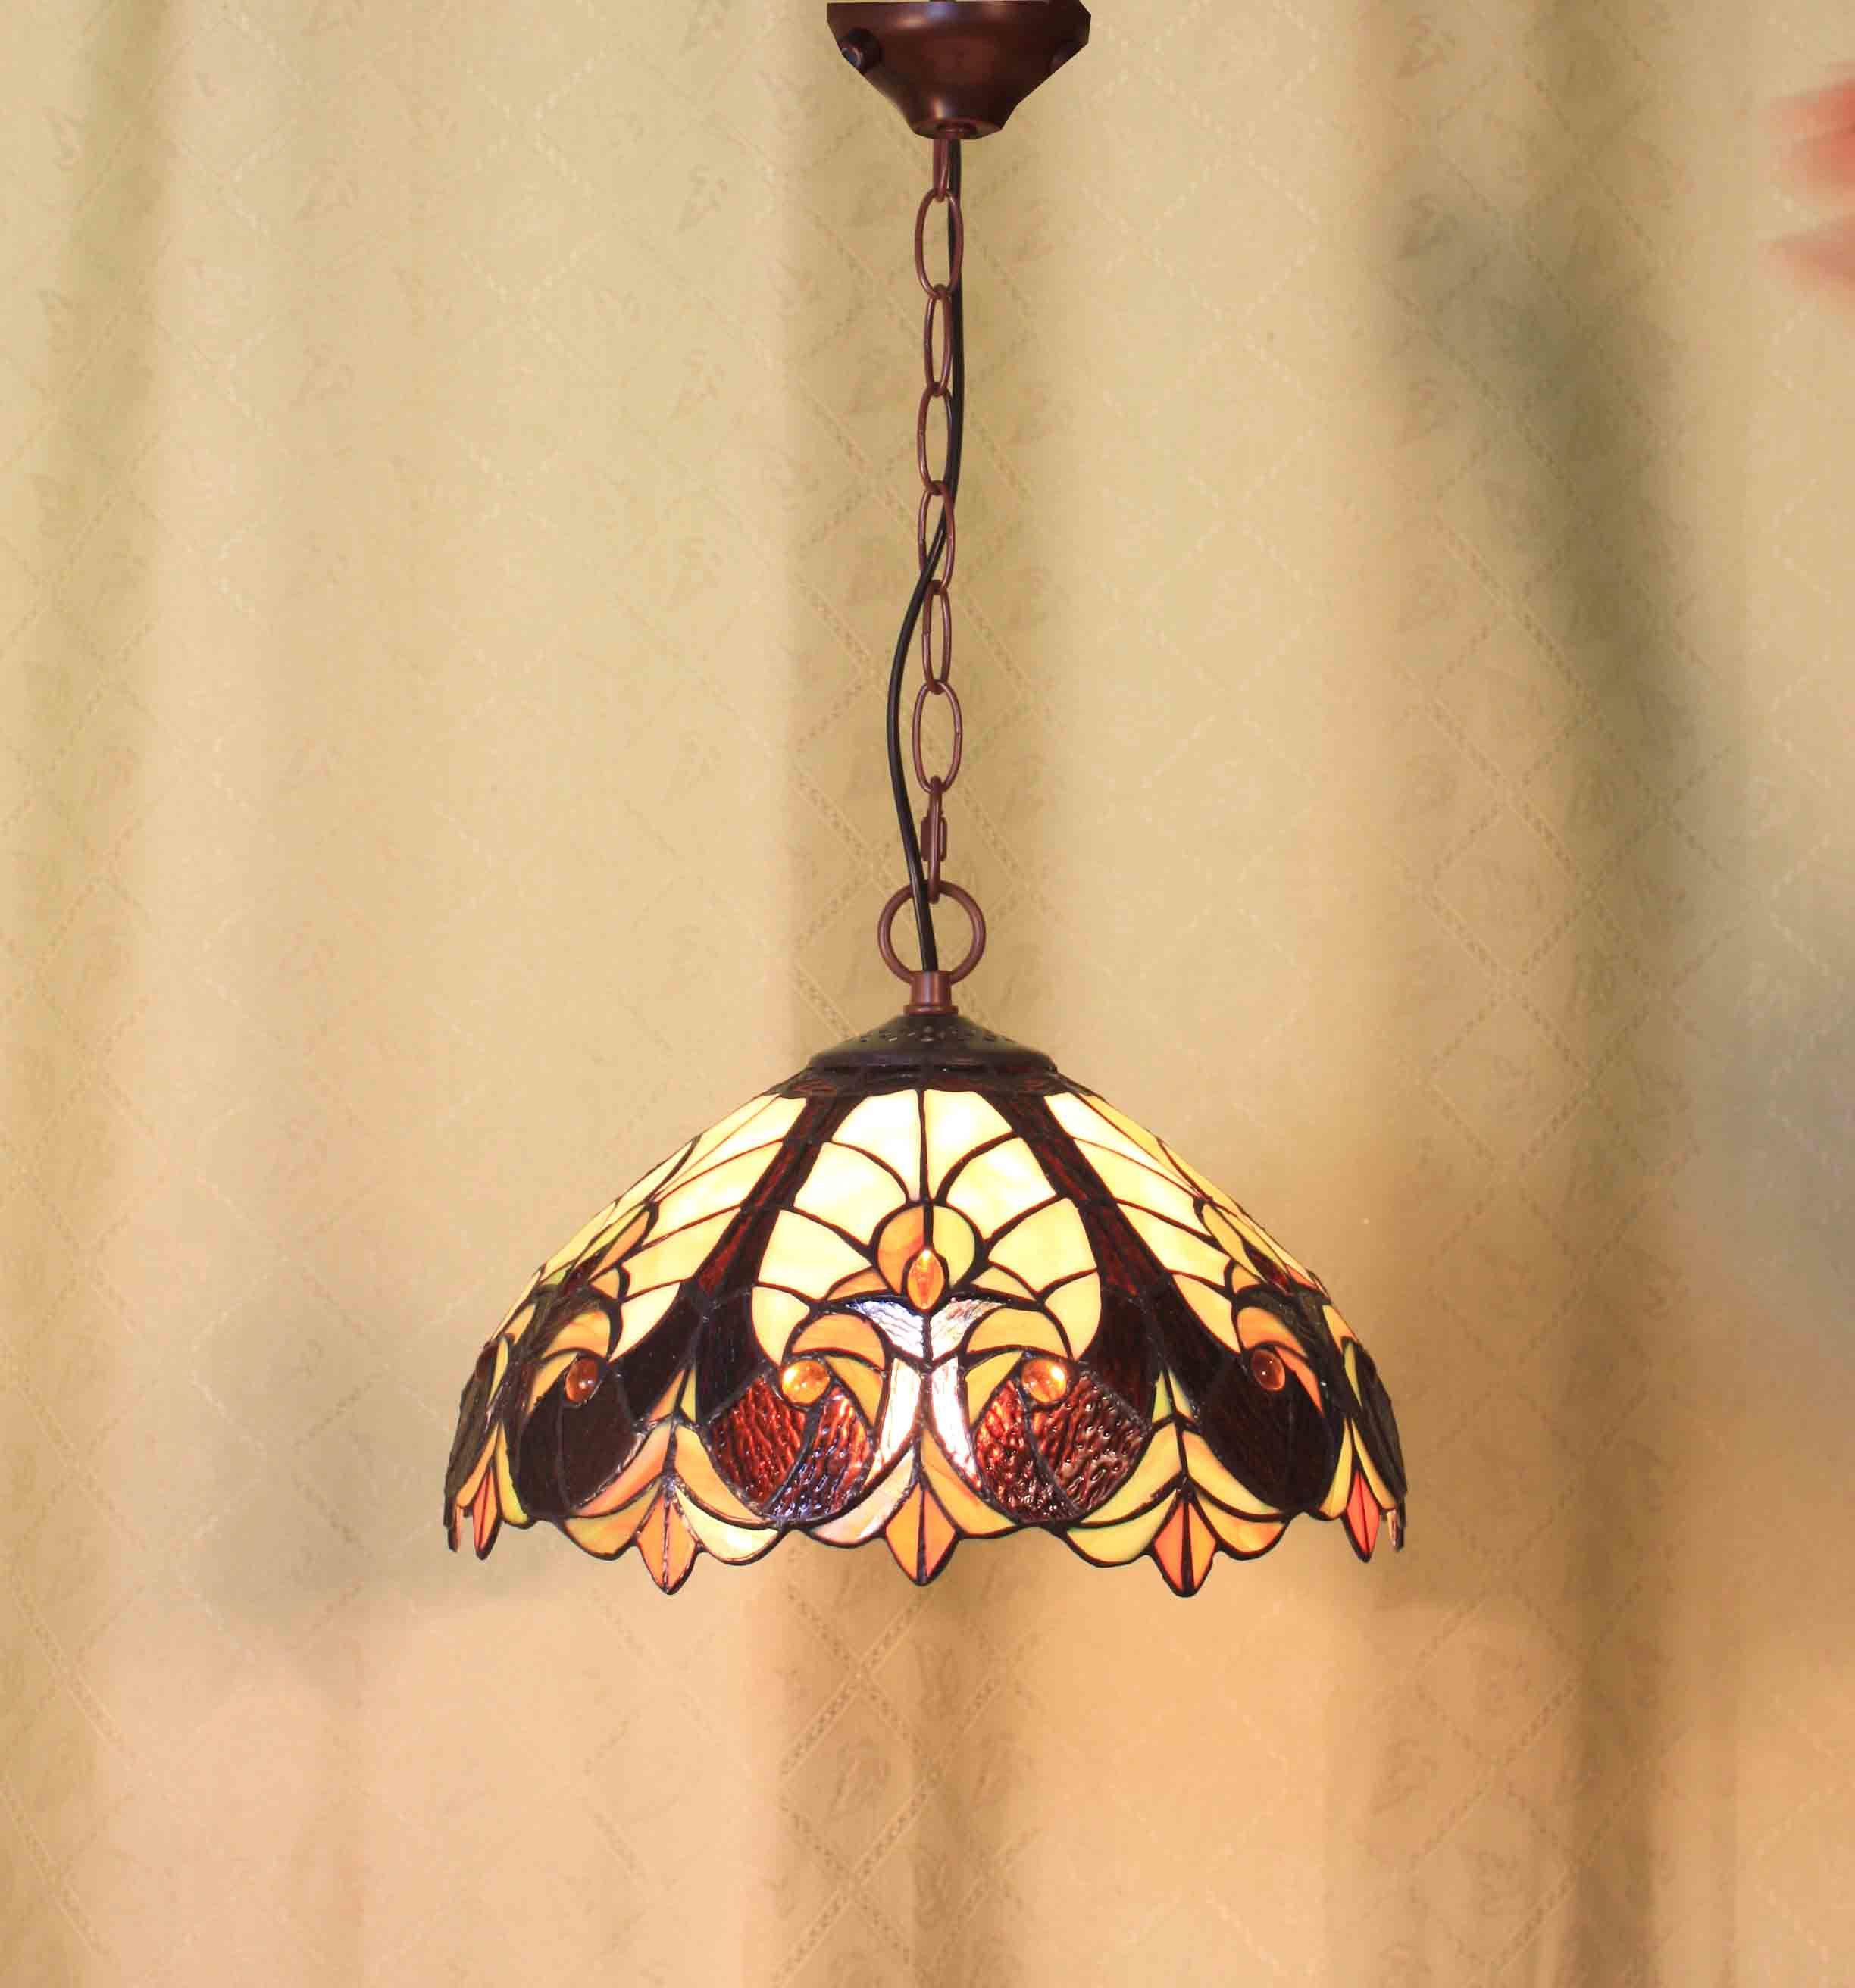 Stained Glass Hanging Lamp.Hot Item Stained Glass Hanging Lamp And Pendant Clp197